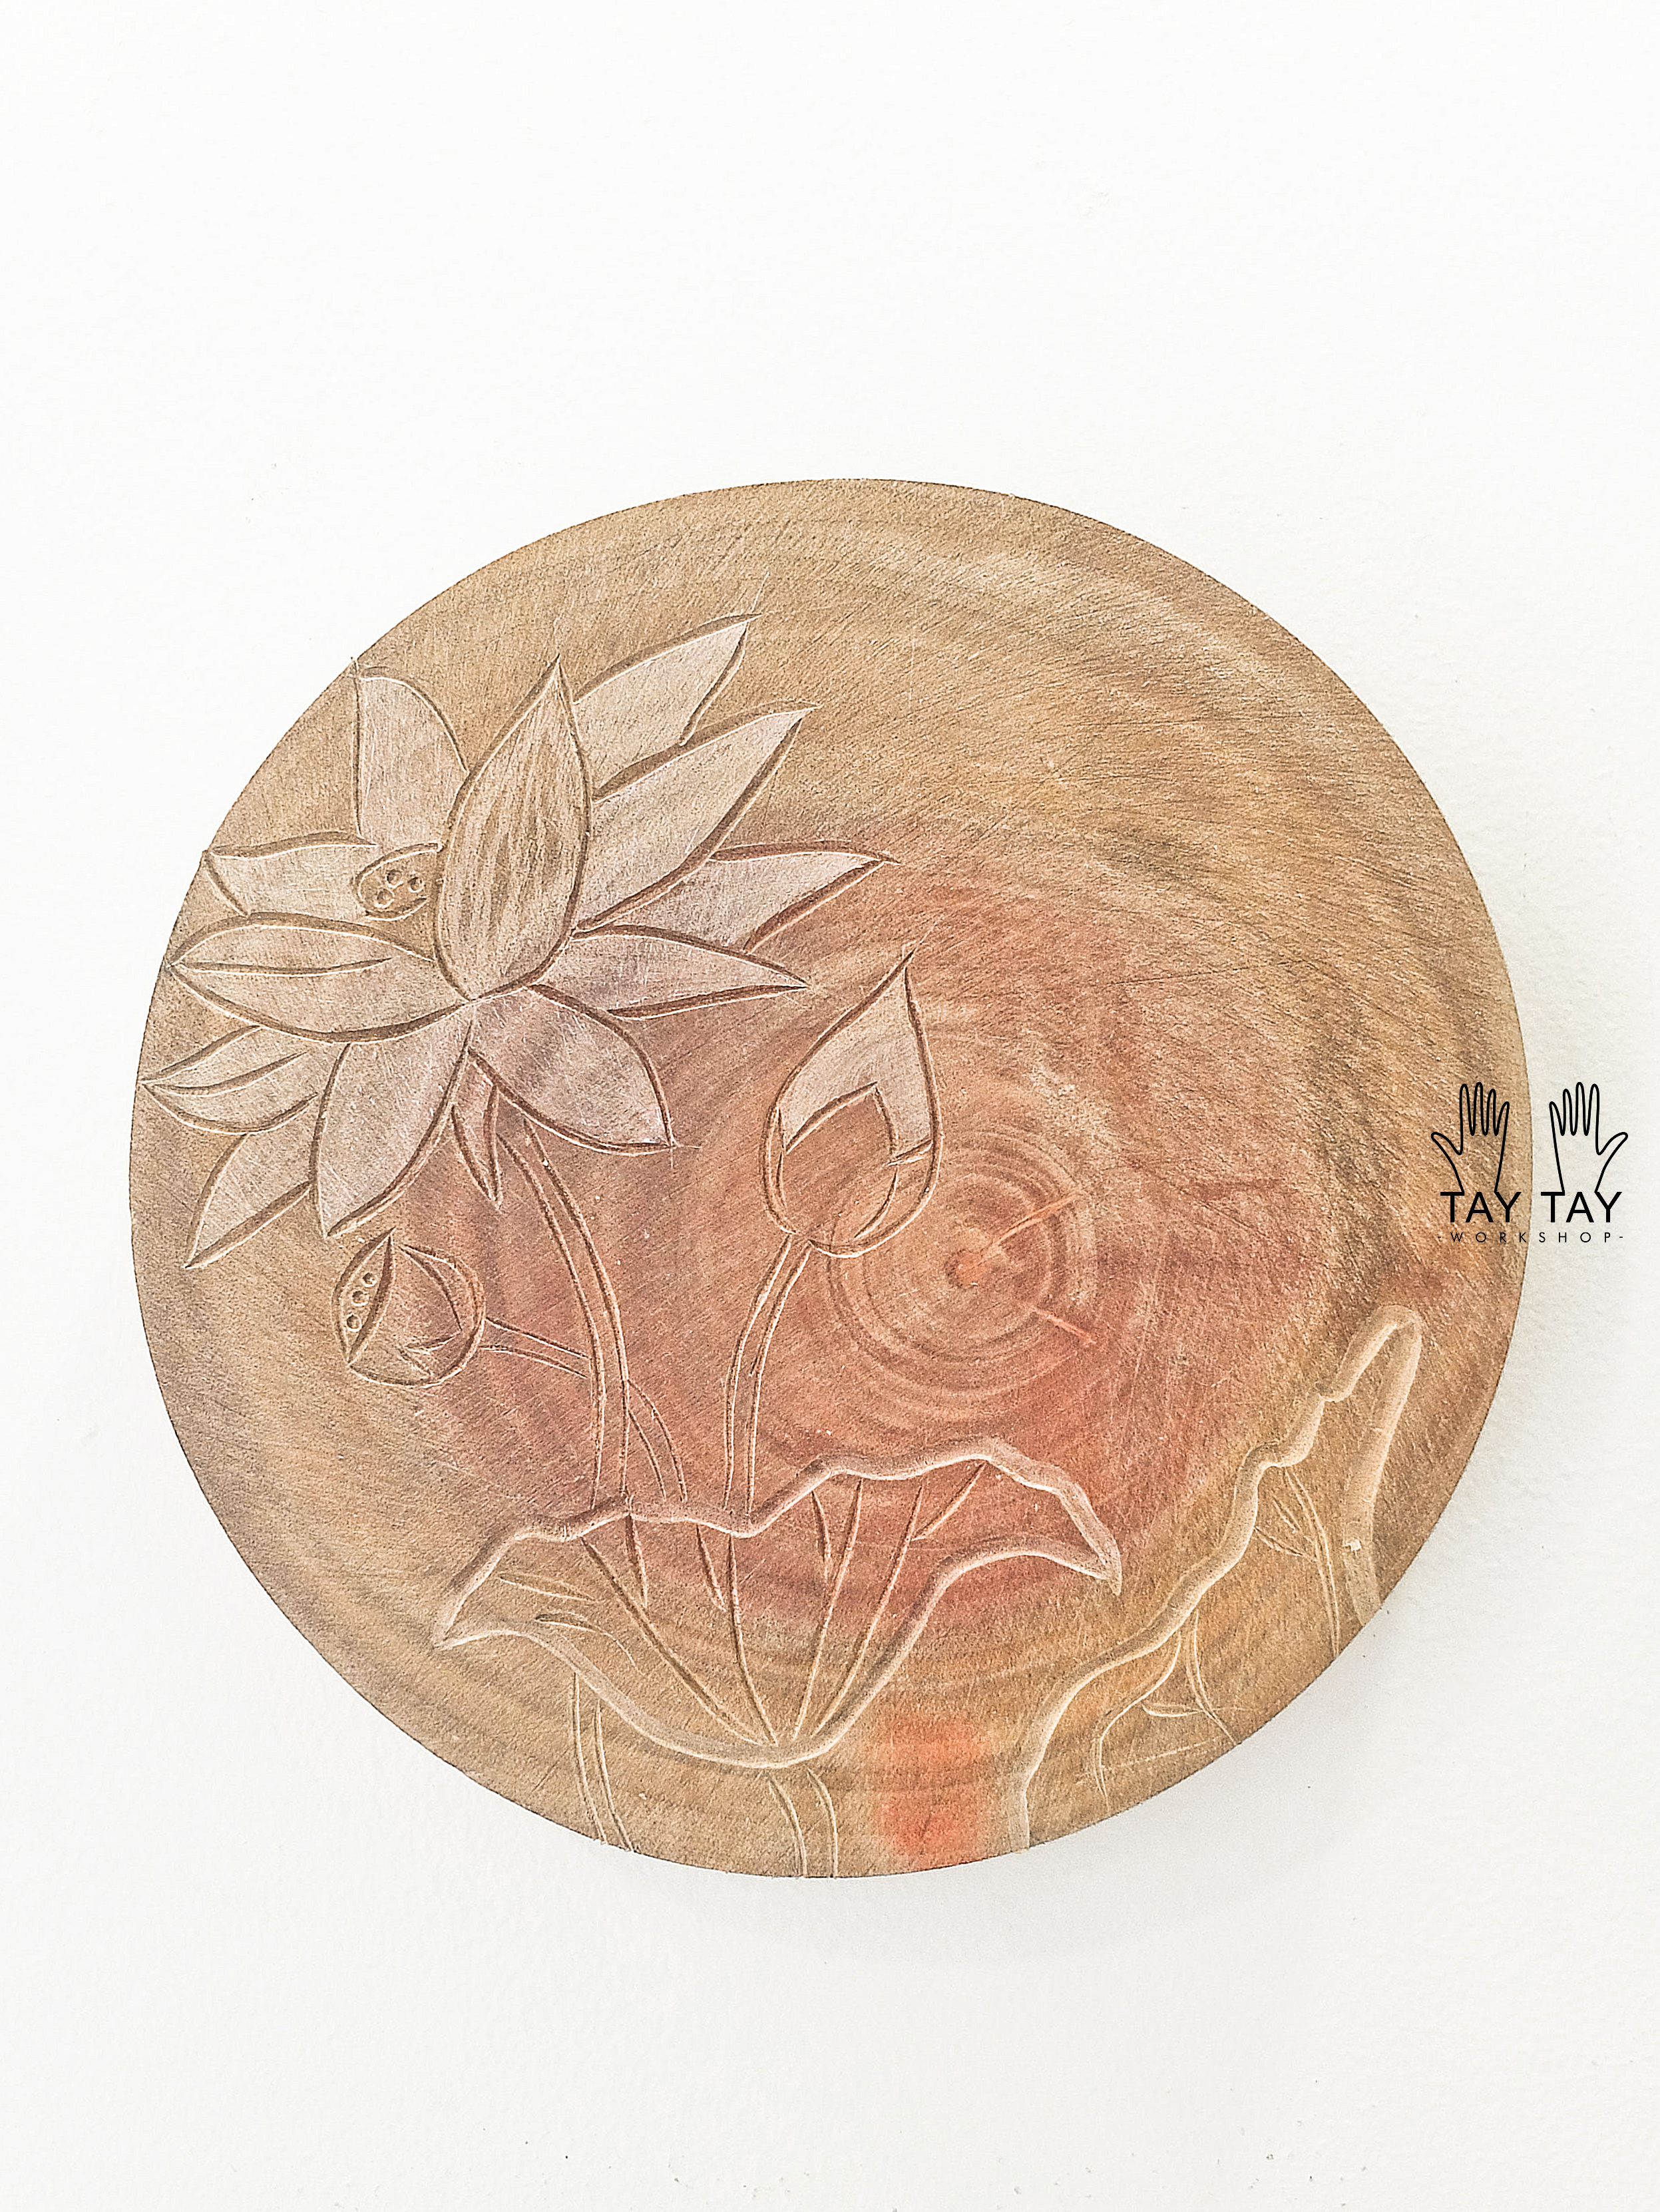 taytayworkshop-wood-artwork-6.jpg